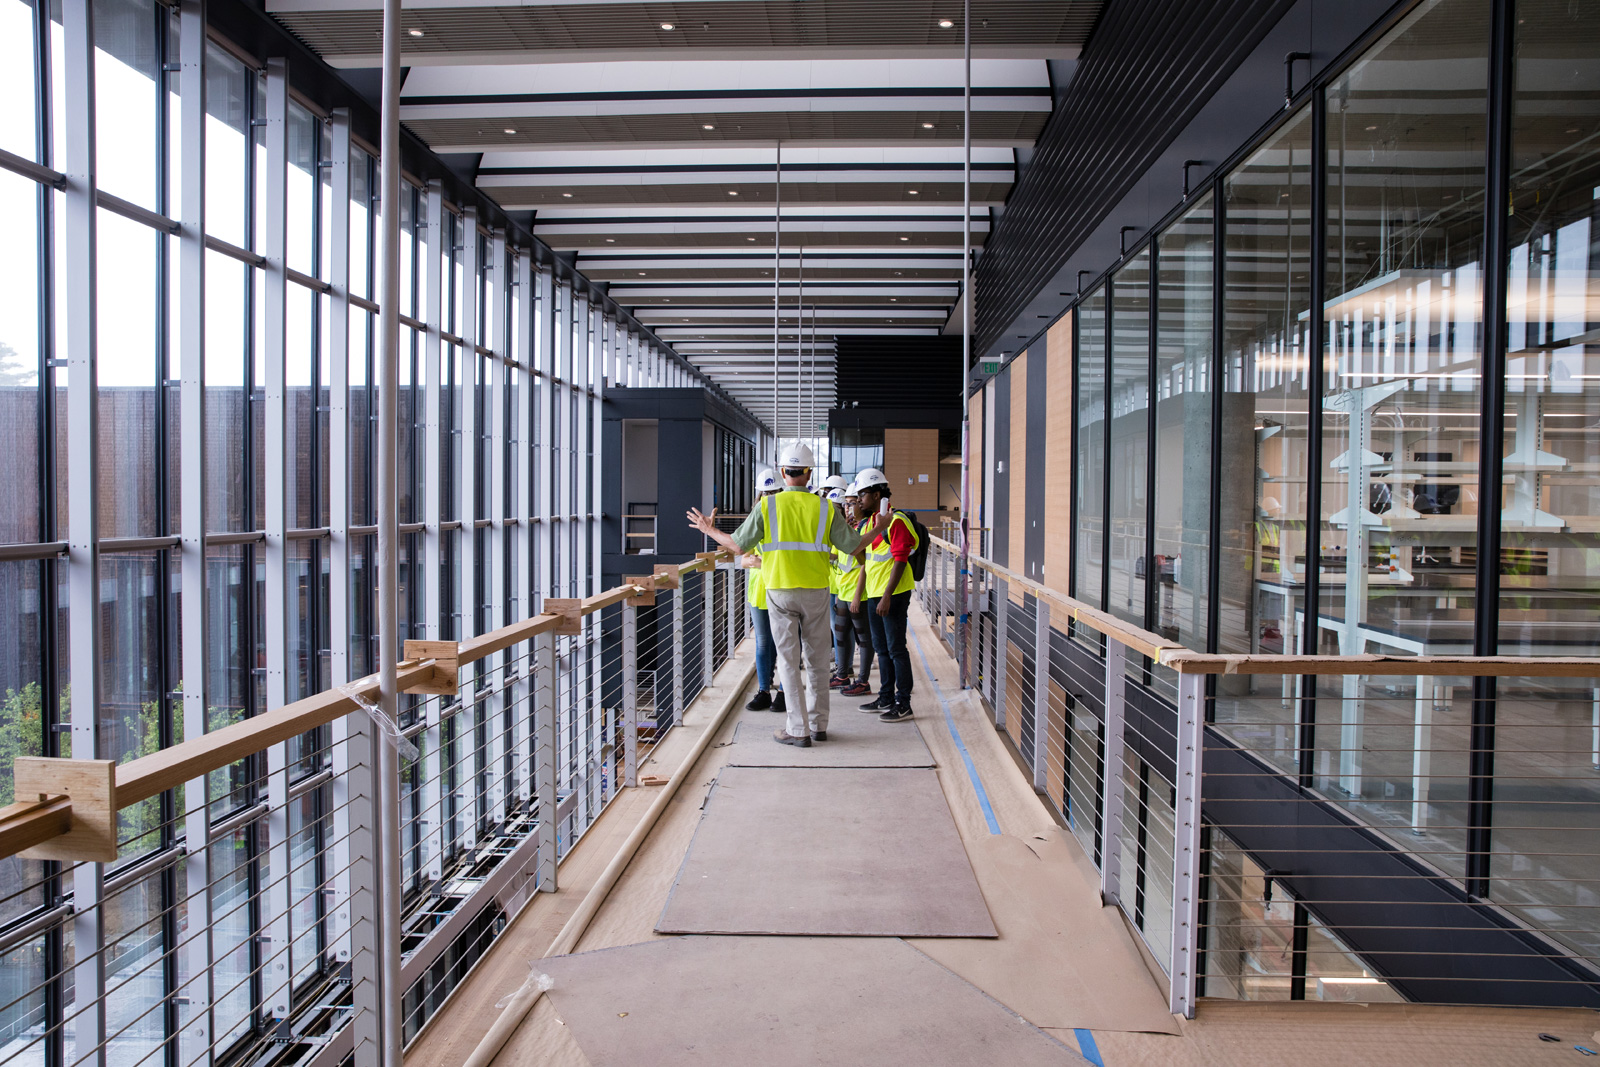 People in hard hats standing on a corridor in front of the front glass wall of the Science Center.